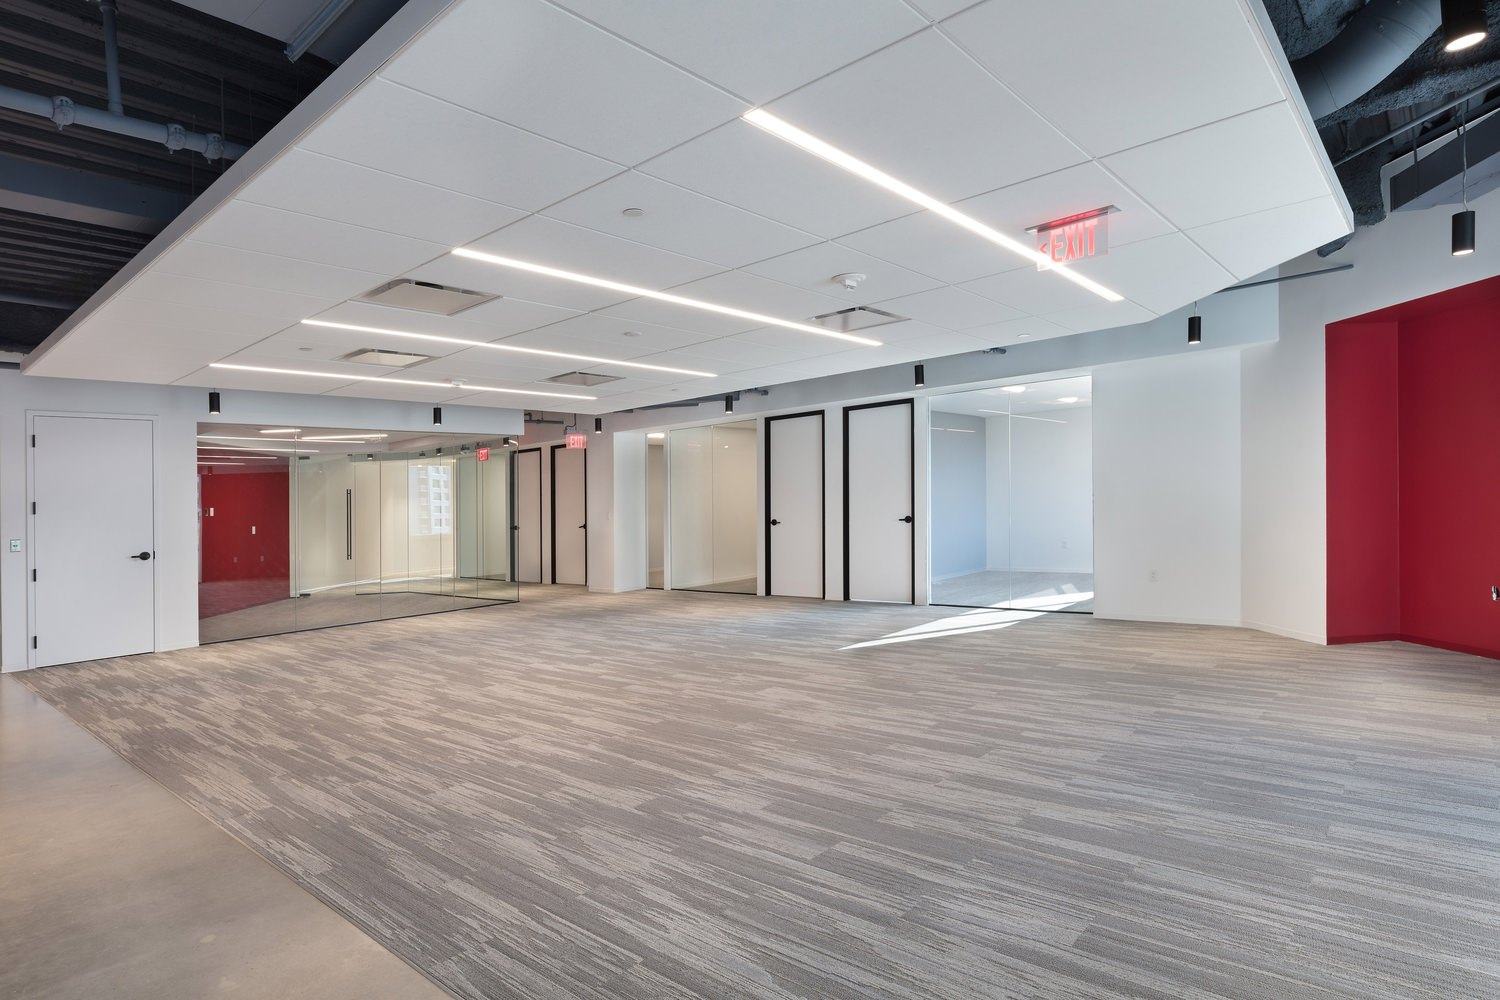 A large room that is empty and has a white drop ceiling in it and wood floors for it.